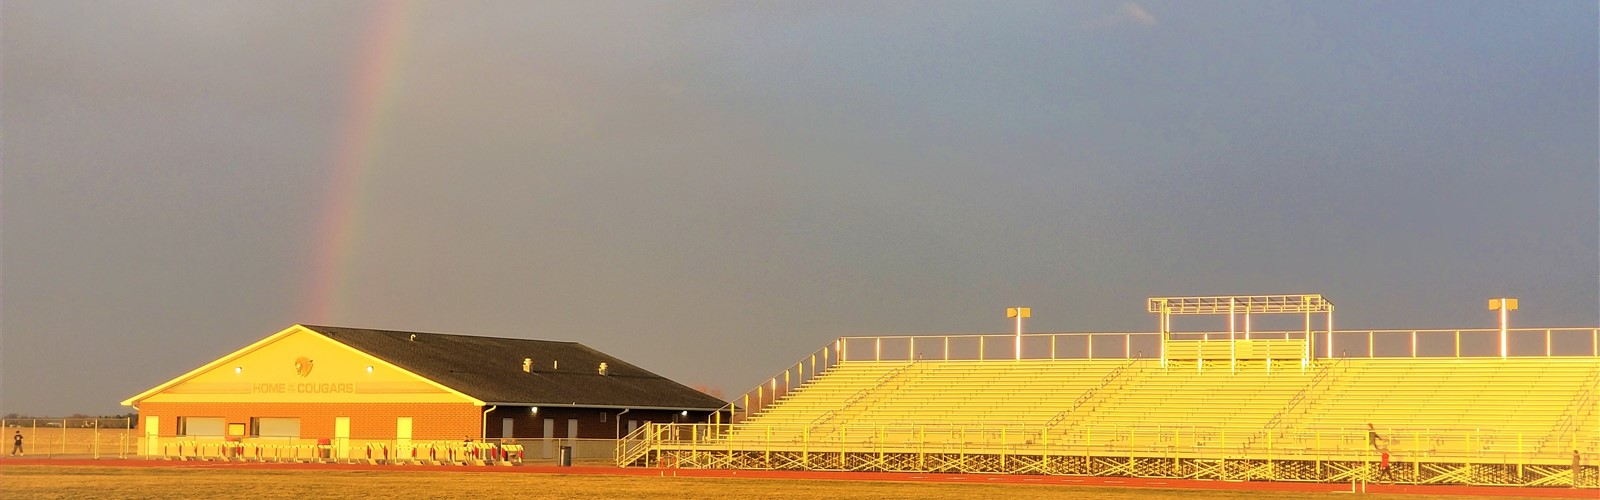 VWCS track stadium and concession stand with a rainbow in the background